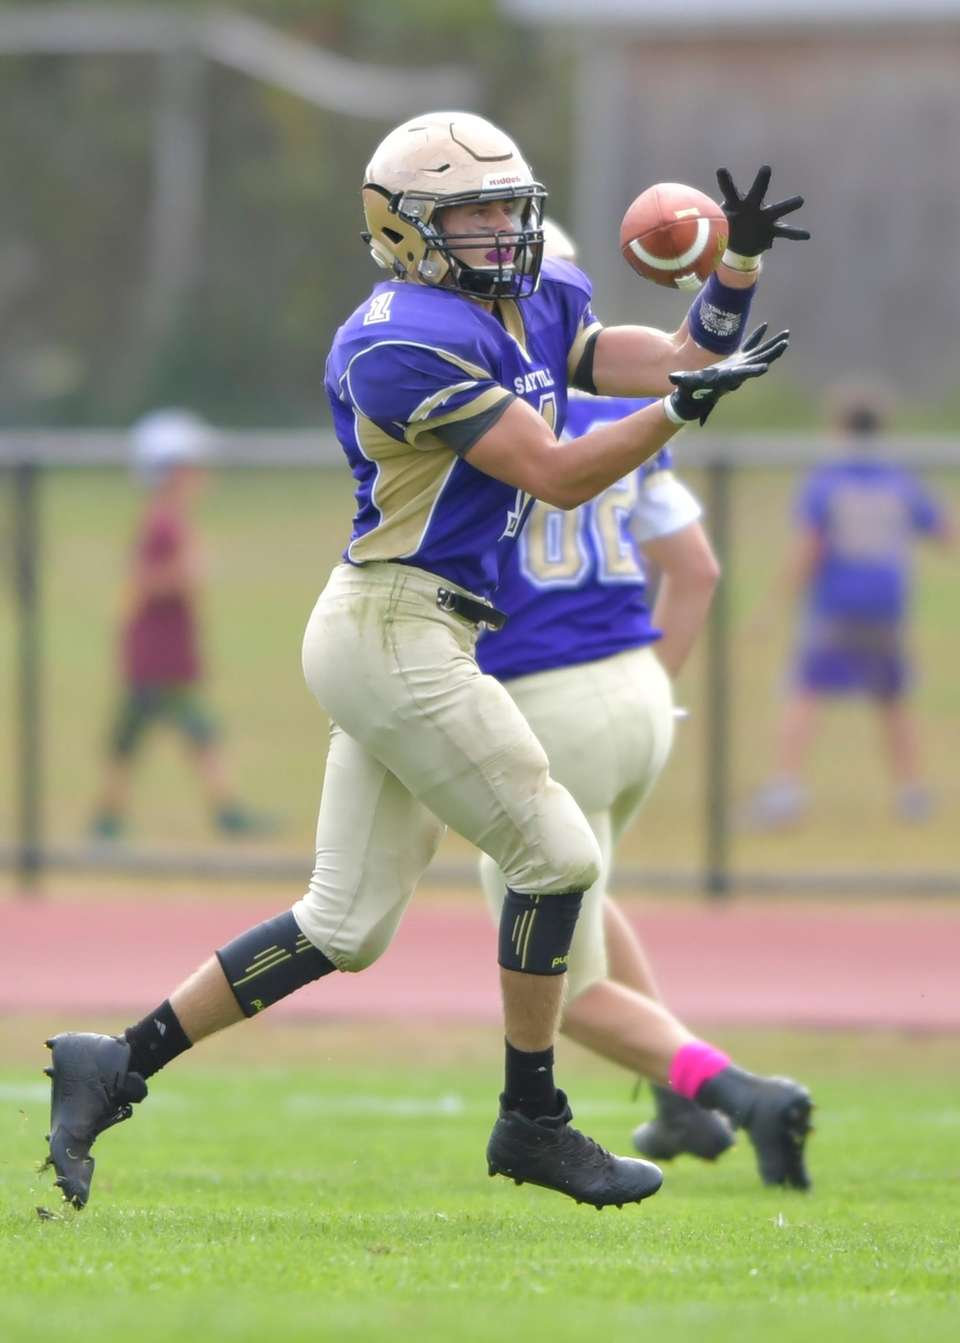 Sayville's Max Kolar makes the catch during a